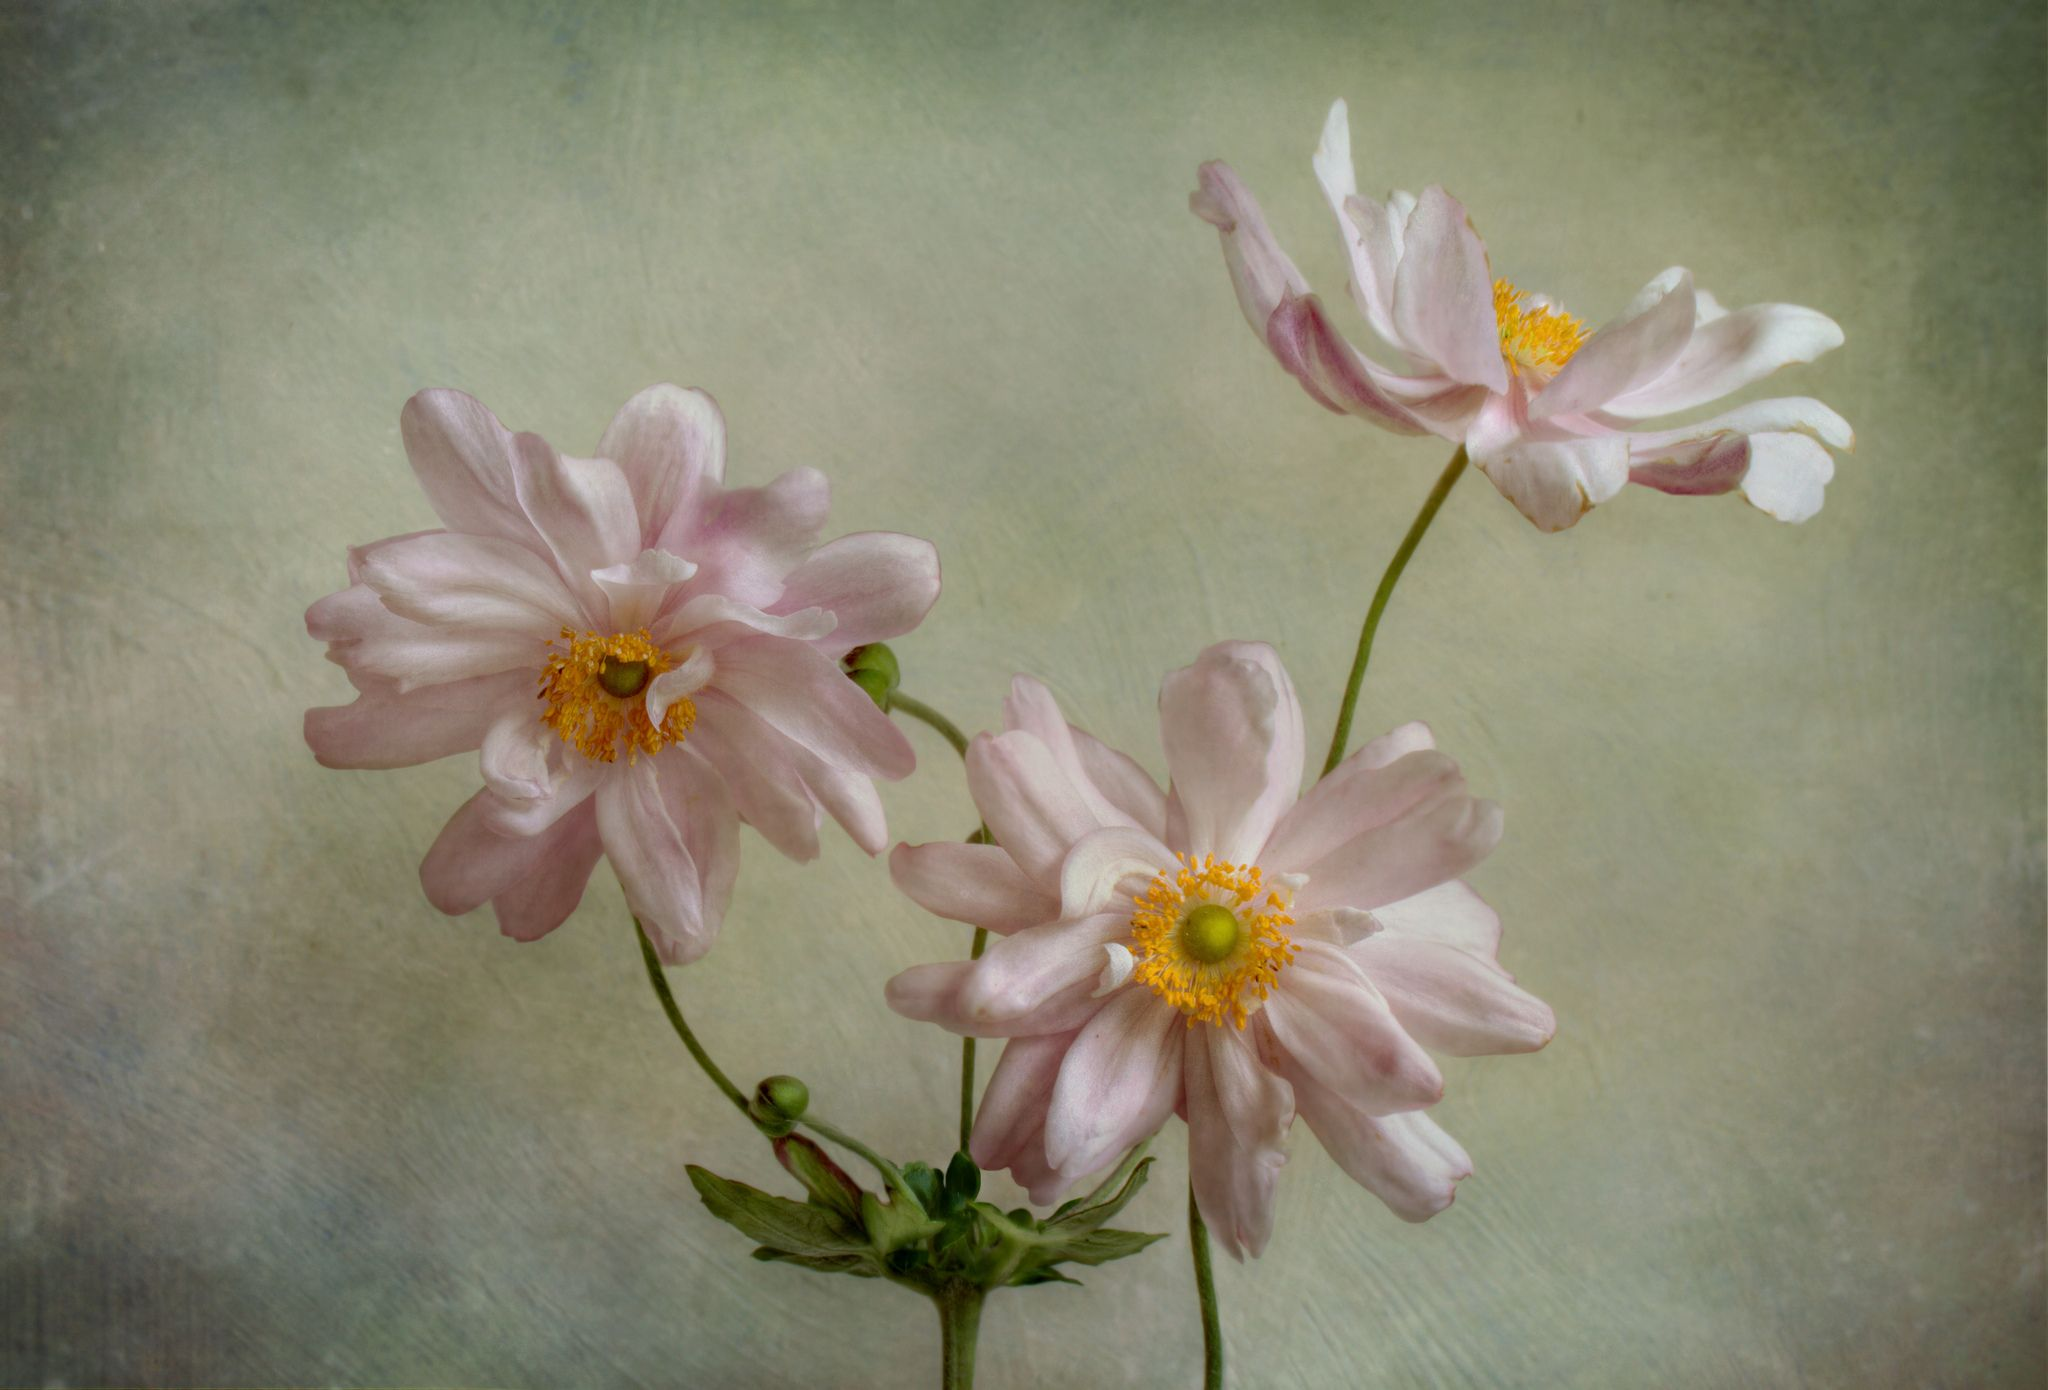 Explore Mandy Disher's photos on Flickr. Mandy Disher has uploaded 1282 photos to Flickr.